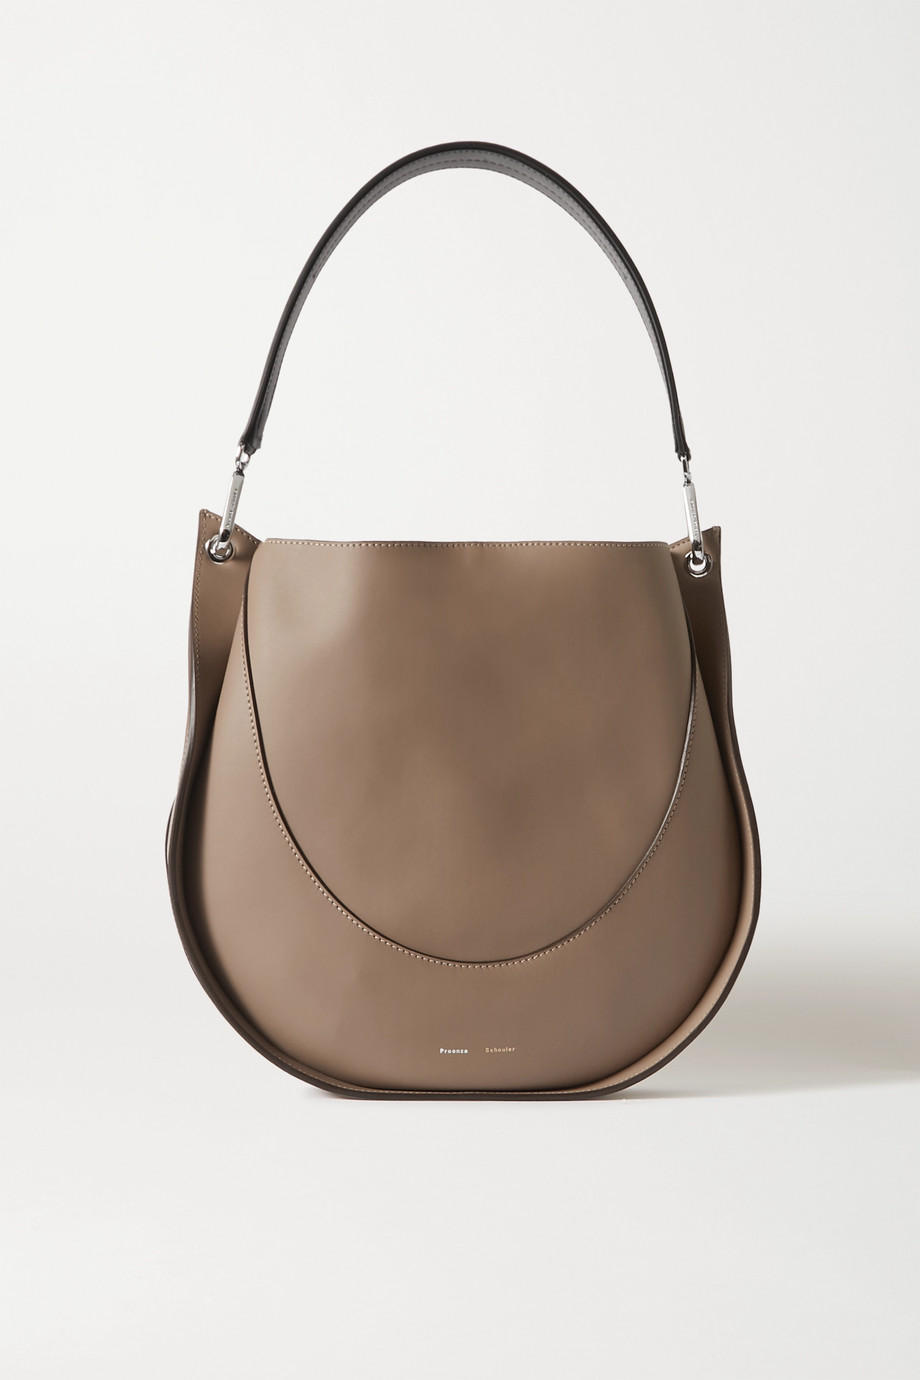 Proenza Schouler Arch large two-tone leather shoulder bag